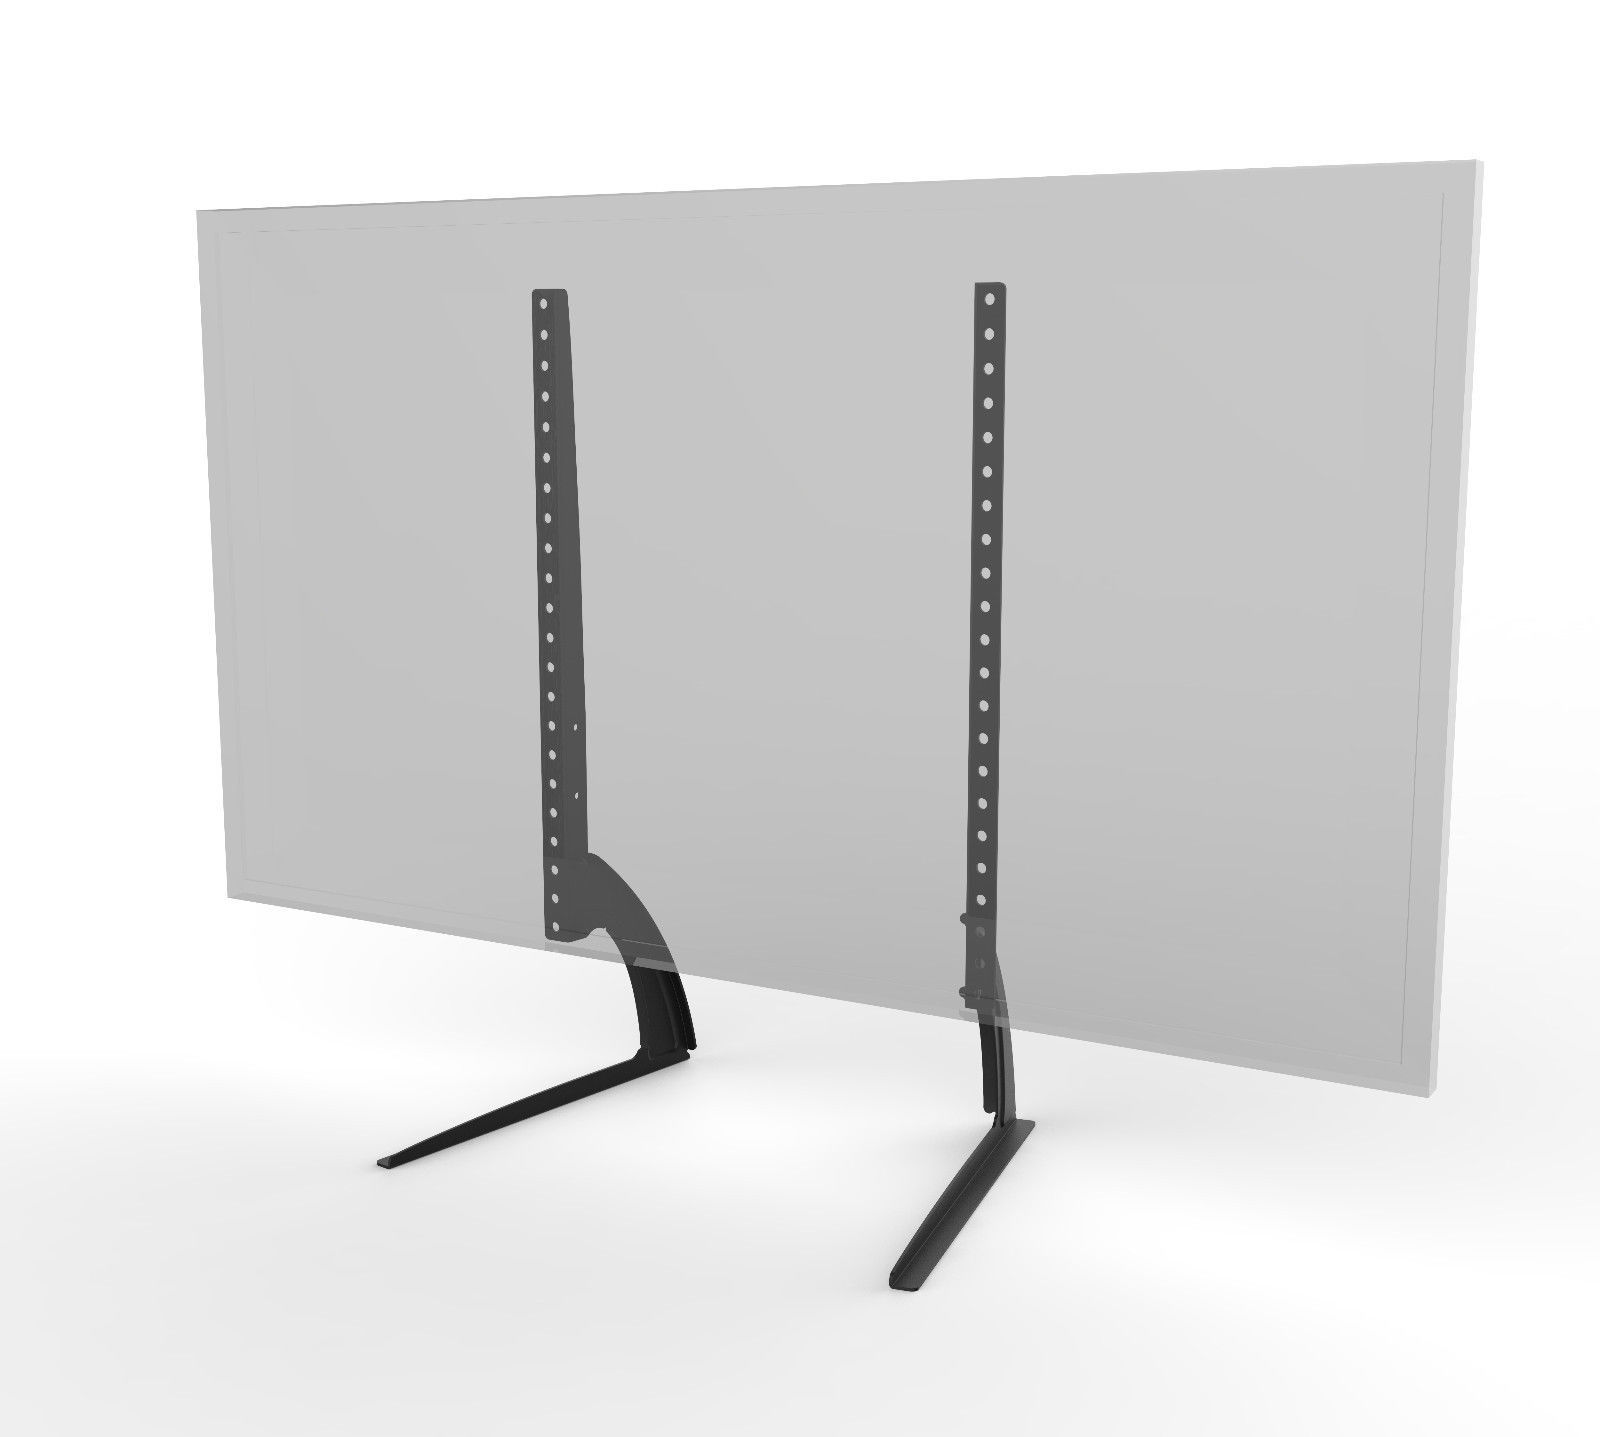 Universal Table Top TV Stand Legs for Sharp LC-46D65U Height Adjustable